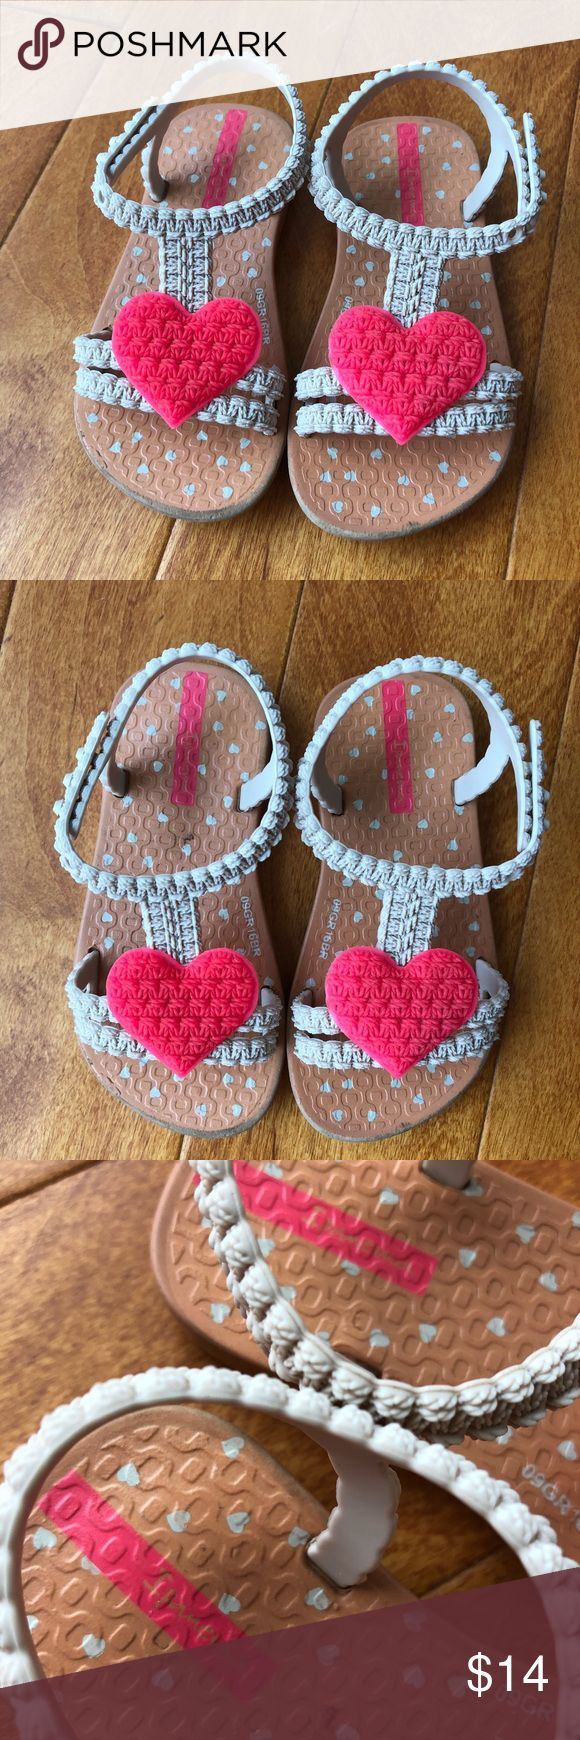 Ipanema, ipanema Toddler Sandals, hearts, size 6 Ipanema, ipanema Toddler Sandals, hearts, size 6 Gently used. Super cute designer slippers. Ipanema Shoes Sandals & Flip Flops